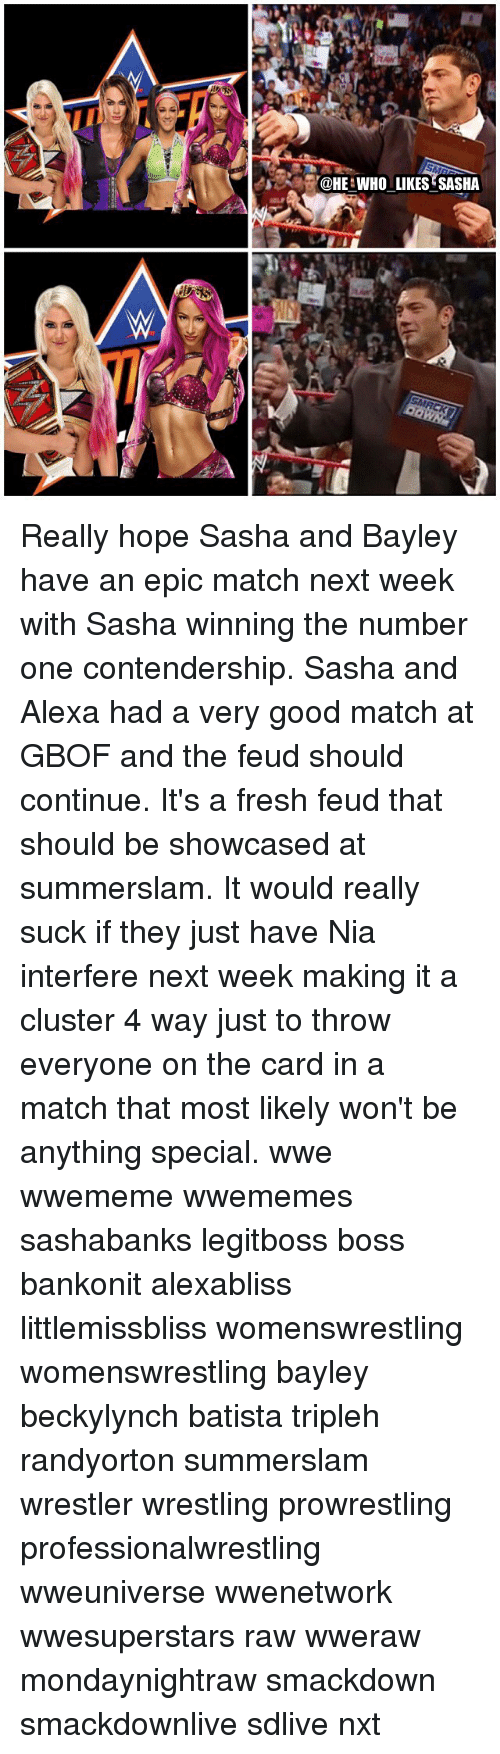 Fresh, Memes, and Wrestling: HE WHO LIKES?SASHA Really hope Sasha and Bayley have an epic match next week with Sasha winning the number one contendership. Sasha and Alexa had a very good match at GBOF and the feud should continue. It's a fresh feud that should be showcased at summerslam. It would really suck if they just have Nia interfere next week making it a cluster 4 way just to throw everyone on the card in a match that most likely won't be anything special. wwe wwememe wwememes sashabanks legitboss boss bankonit alexabliss littlemissbliss womenswrestling womenswrestling bayley beckylynch batista tripleh randyorton summerslam wrestler wrestling prowrestling professionalwrestling wweuniverse wwenetwork wwesuperstars raw wweraw mondaynightraw smackdown smackdownlive sdlive nxt